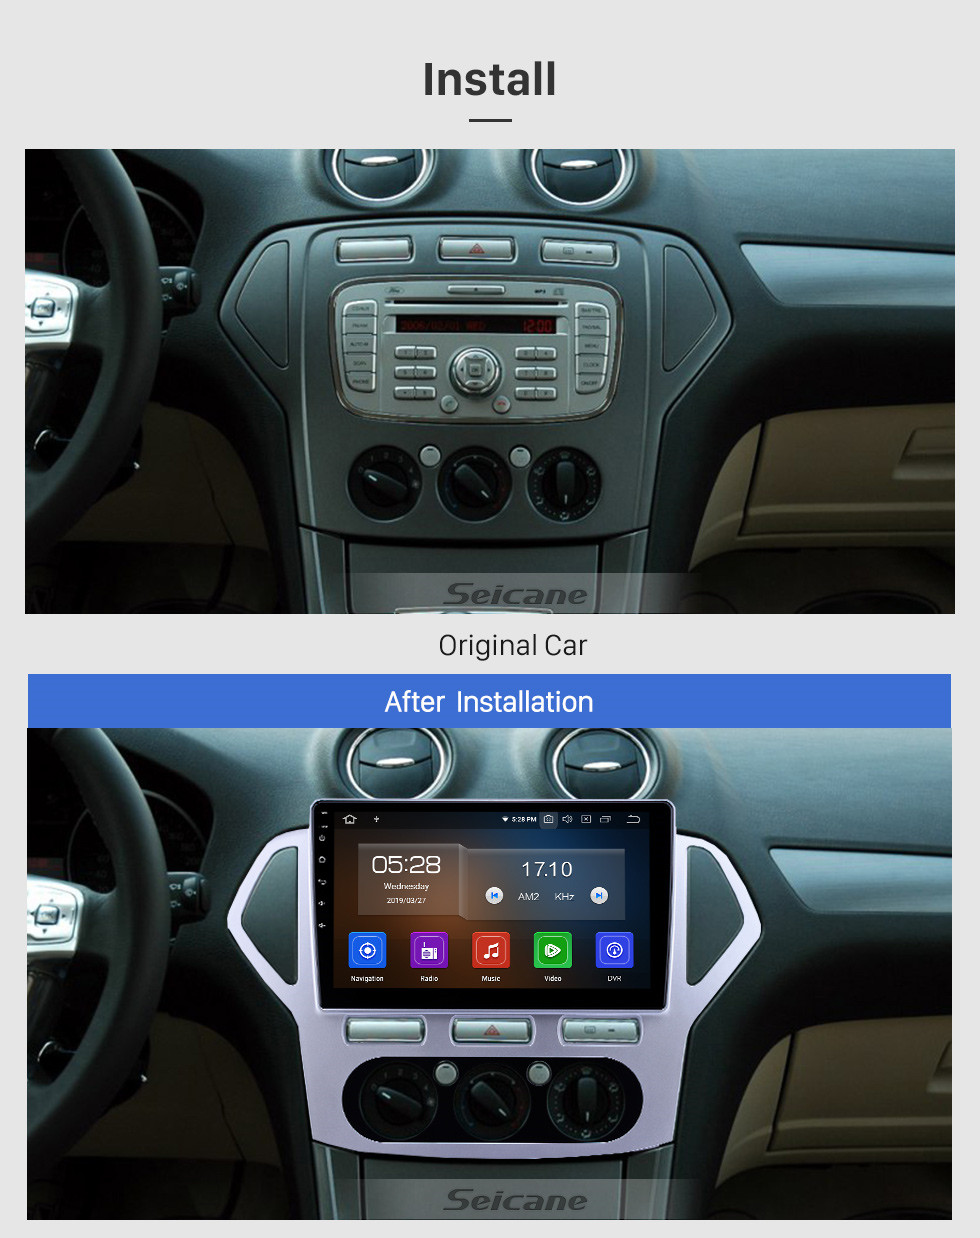 Seicane 10,1 Zoll Android 9.0 Radio für 2007-2010 Ford Mondeo-Zhisheng Handbuch A / C Bluetooth Wifi Touchscreen GPS Navigation Carplay Unterstützung Digital TV